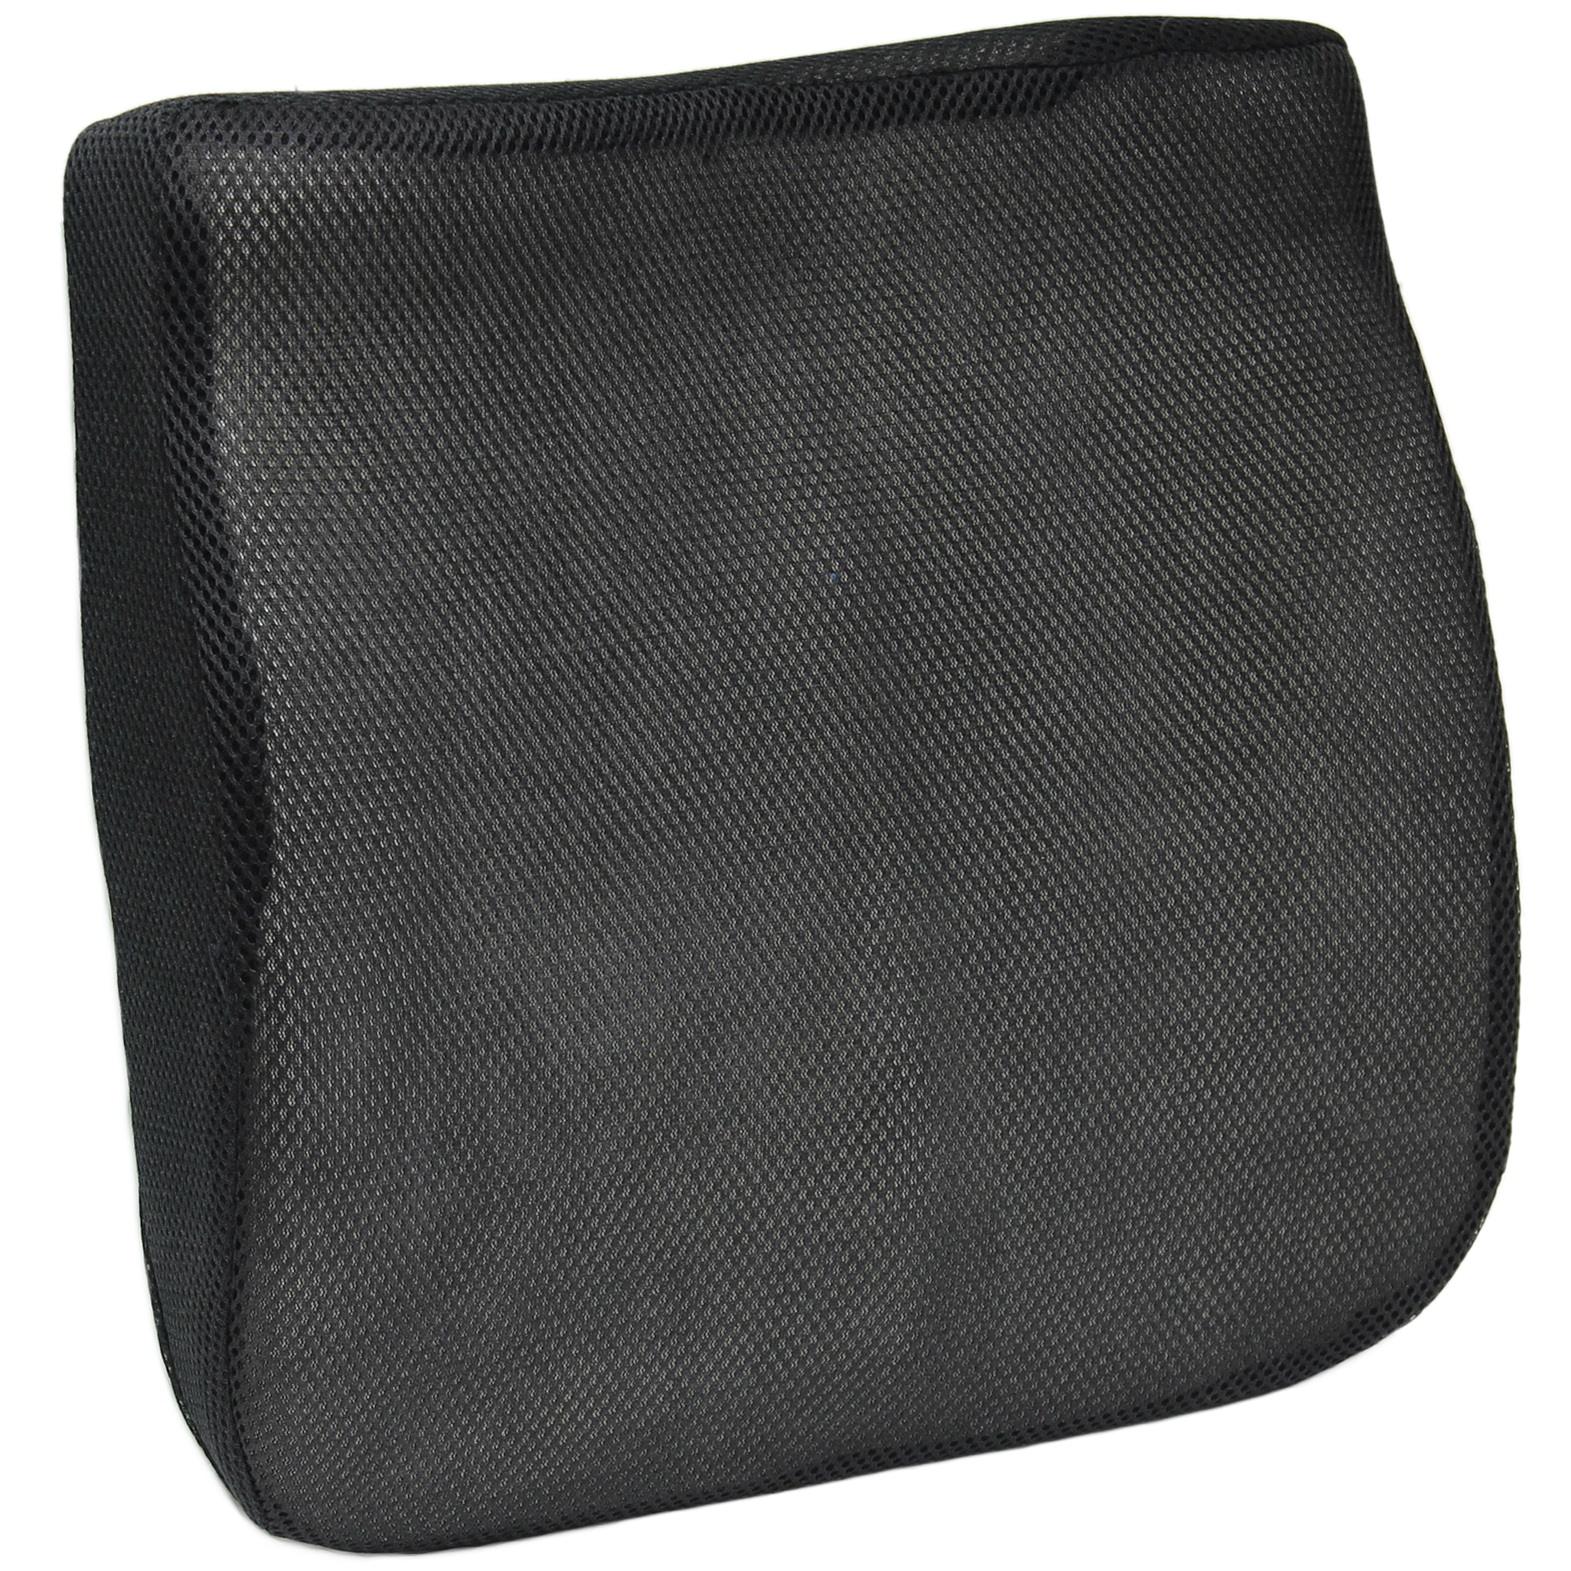 memory foam seat cushion review home design ideas. Black Bedroom Furniture Sets. Home Design Ideas